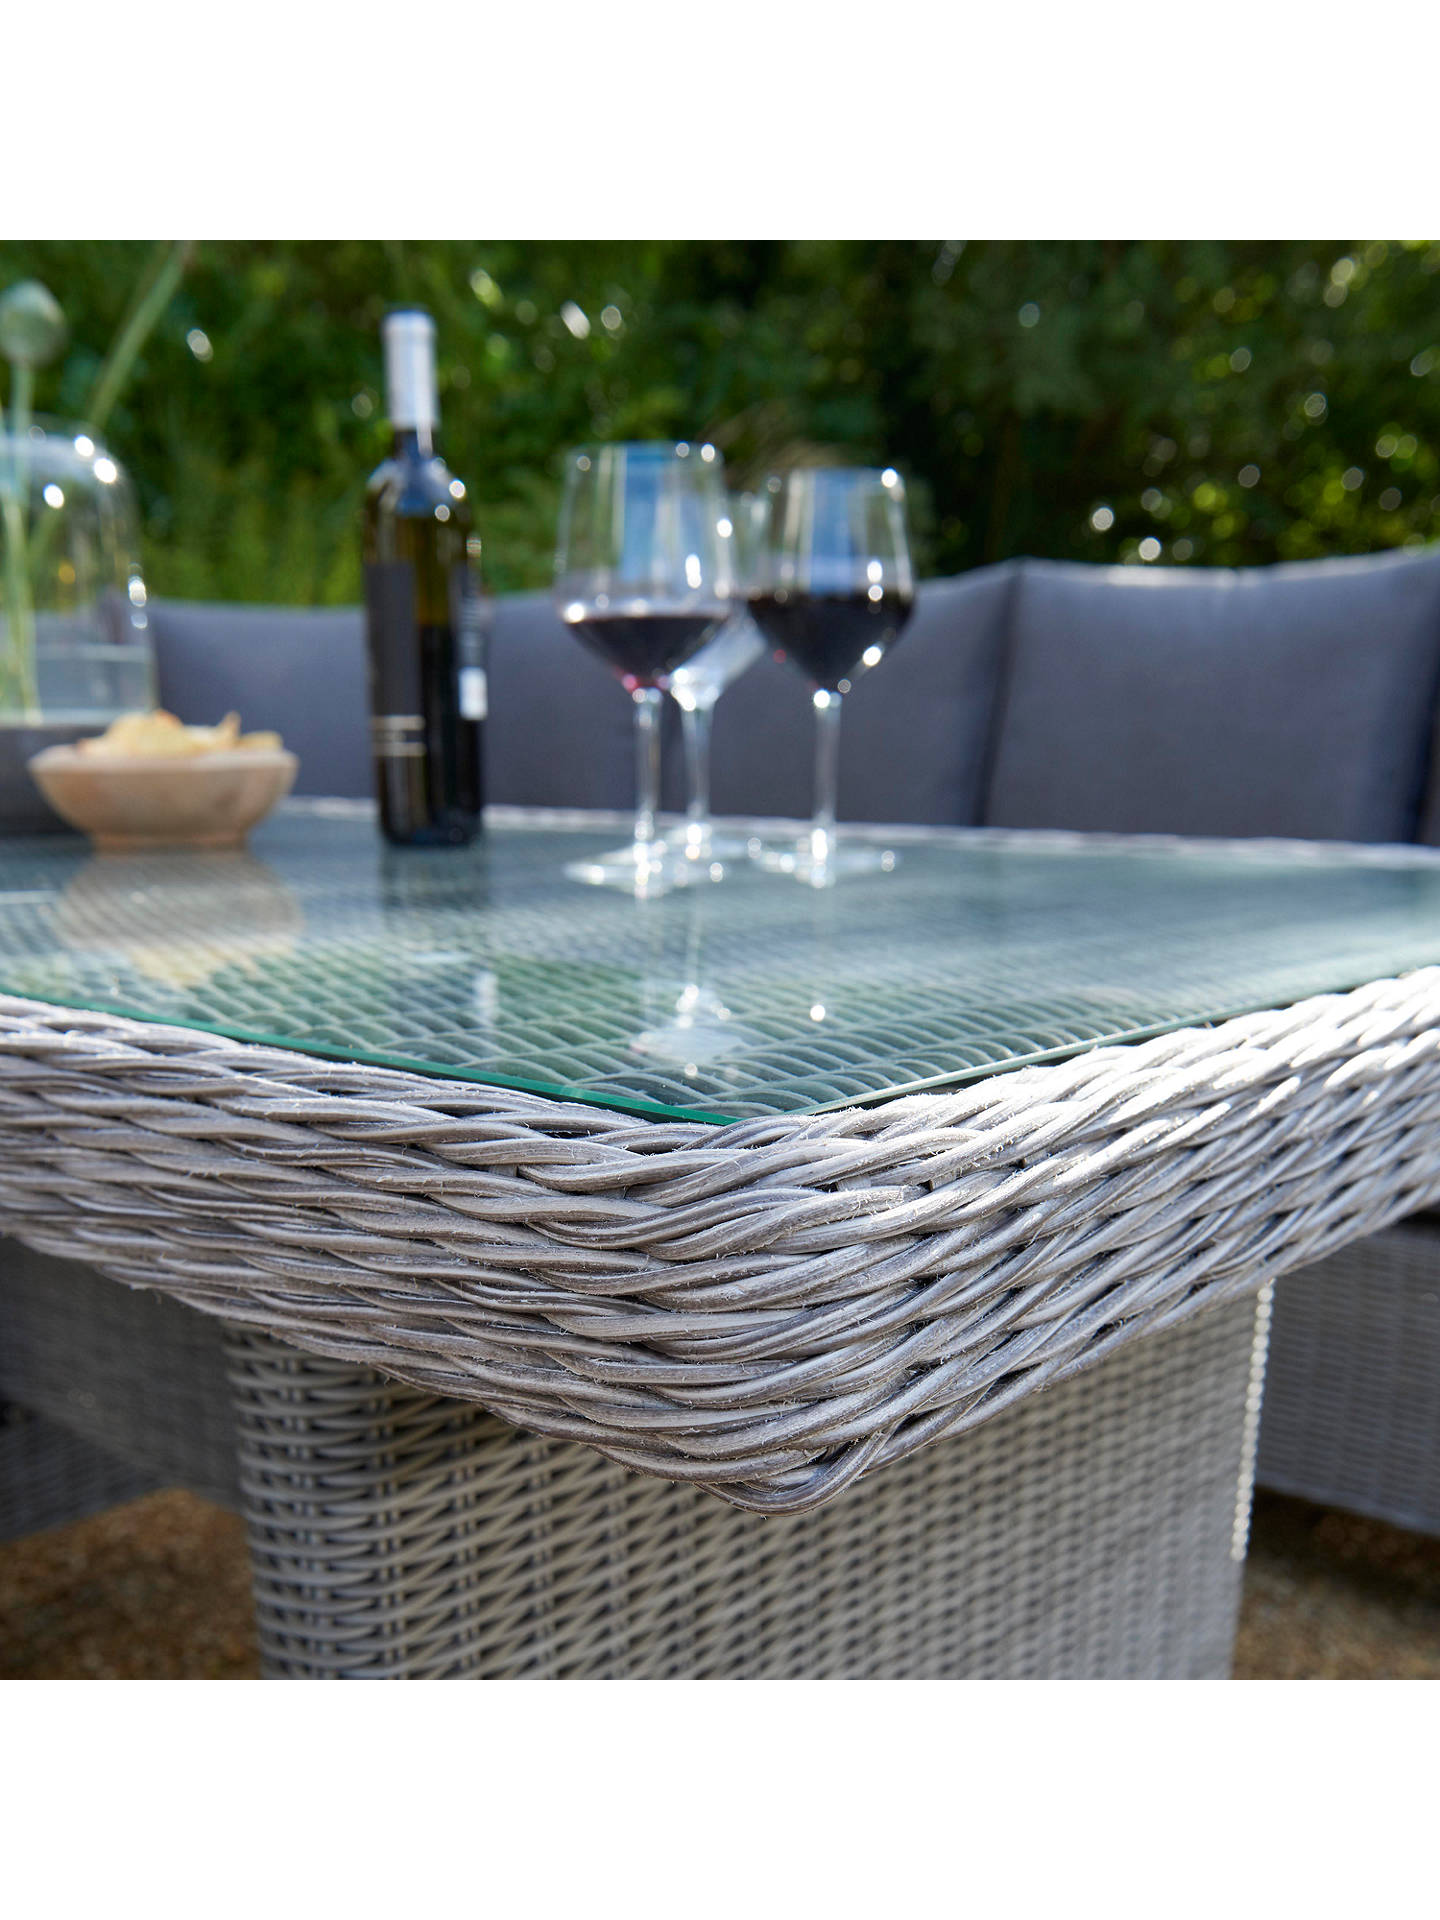 b527de054081 ... Buy KETTLER Palma 8 Seat Corner Garden Glass Table / Chairs Lounge Set  with Side Table